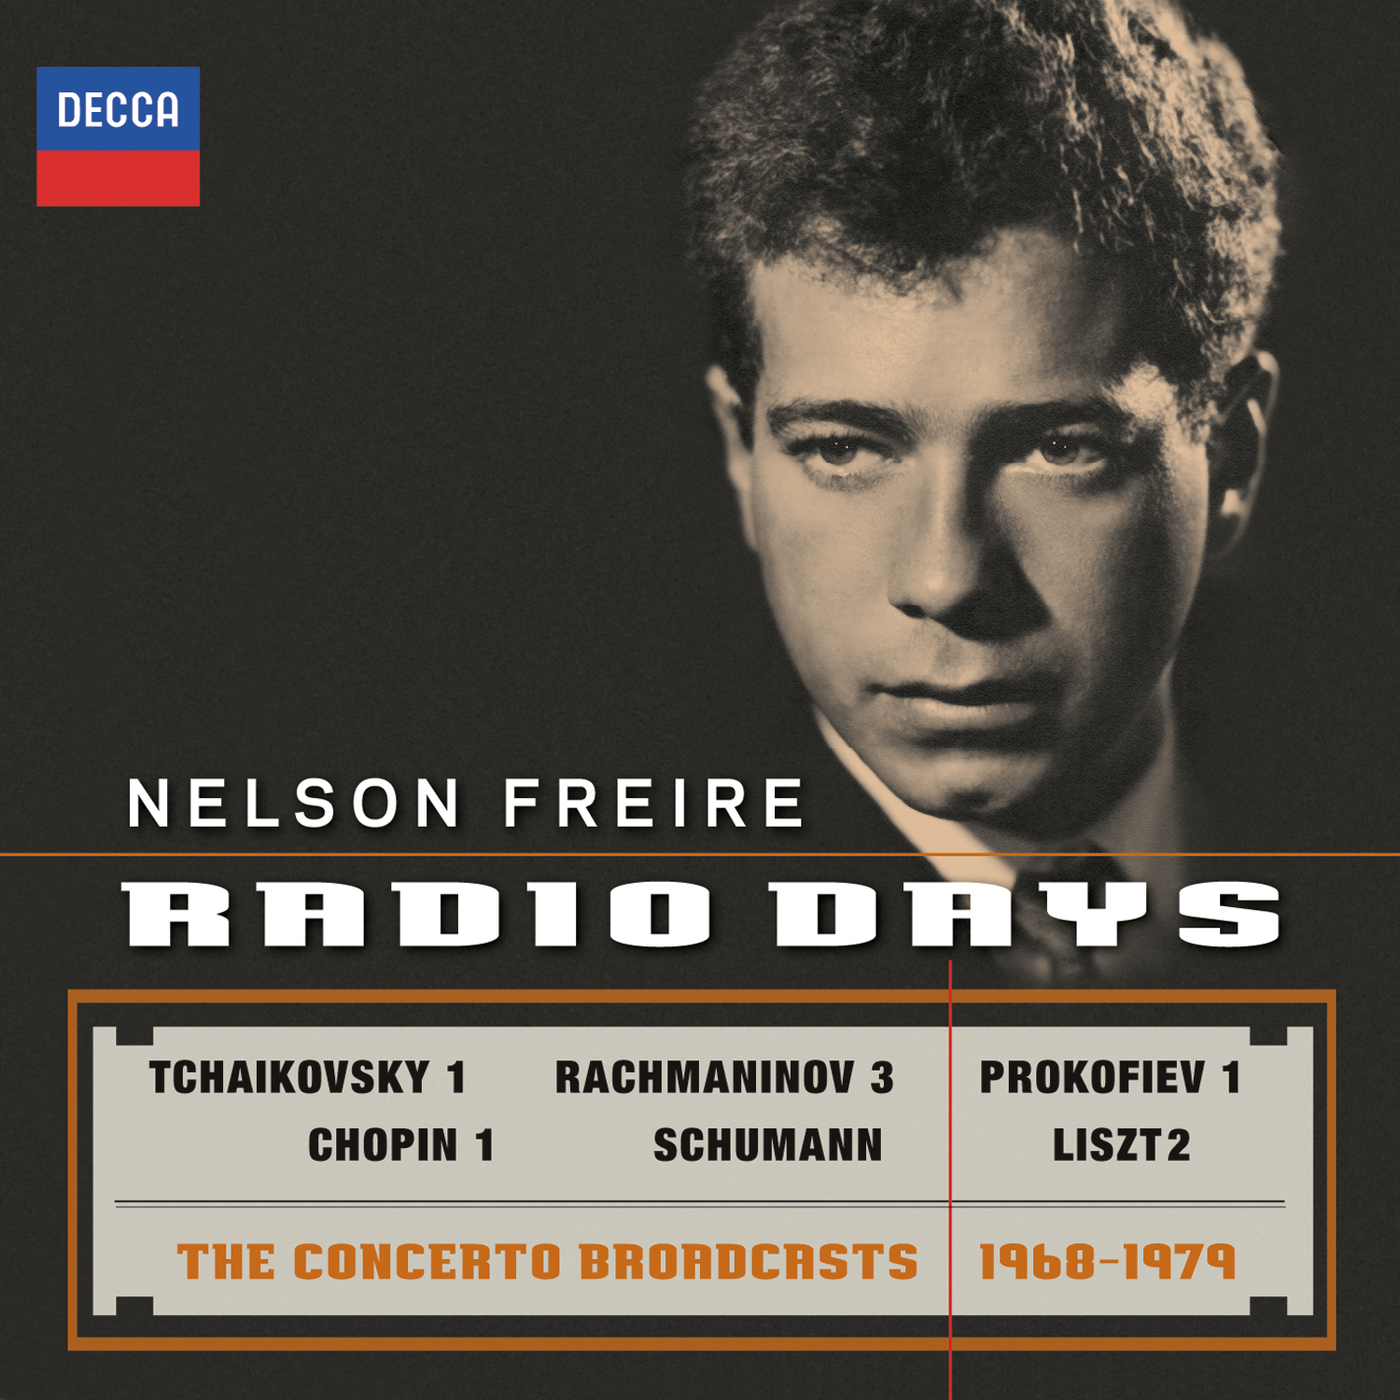 cover freire radio days decca